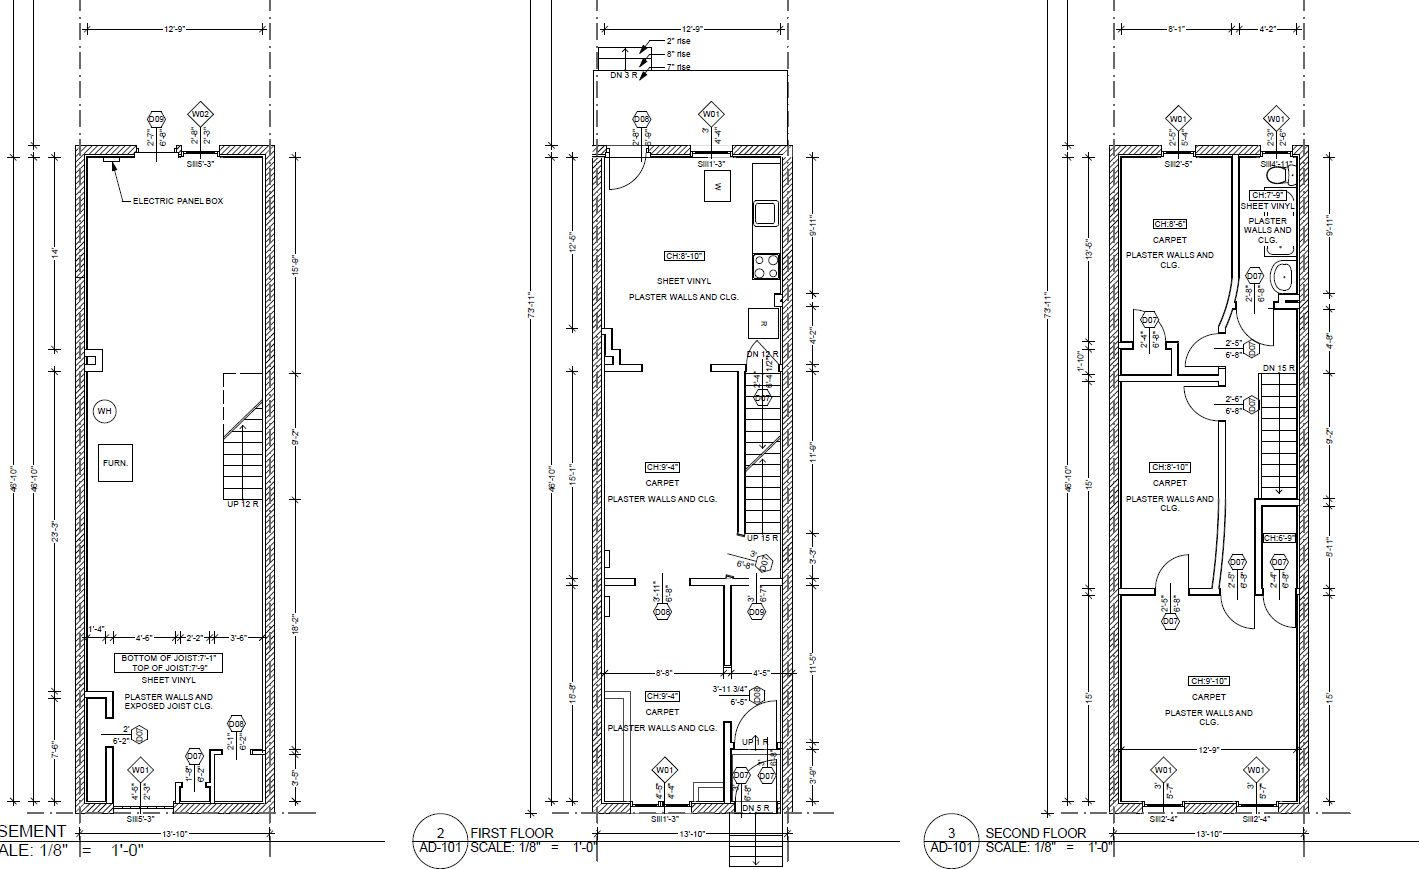 Twostory 1420 869 narrow house plans for House plans for wide but shallow lots